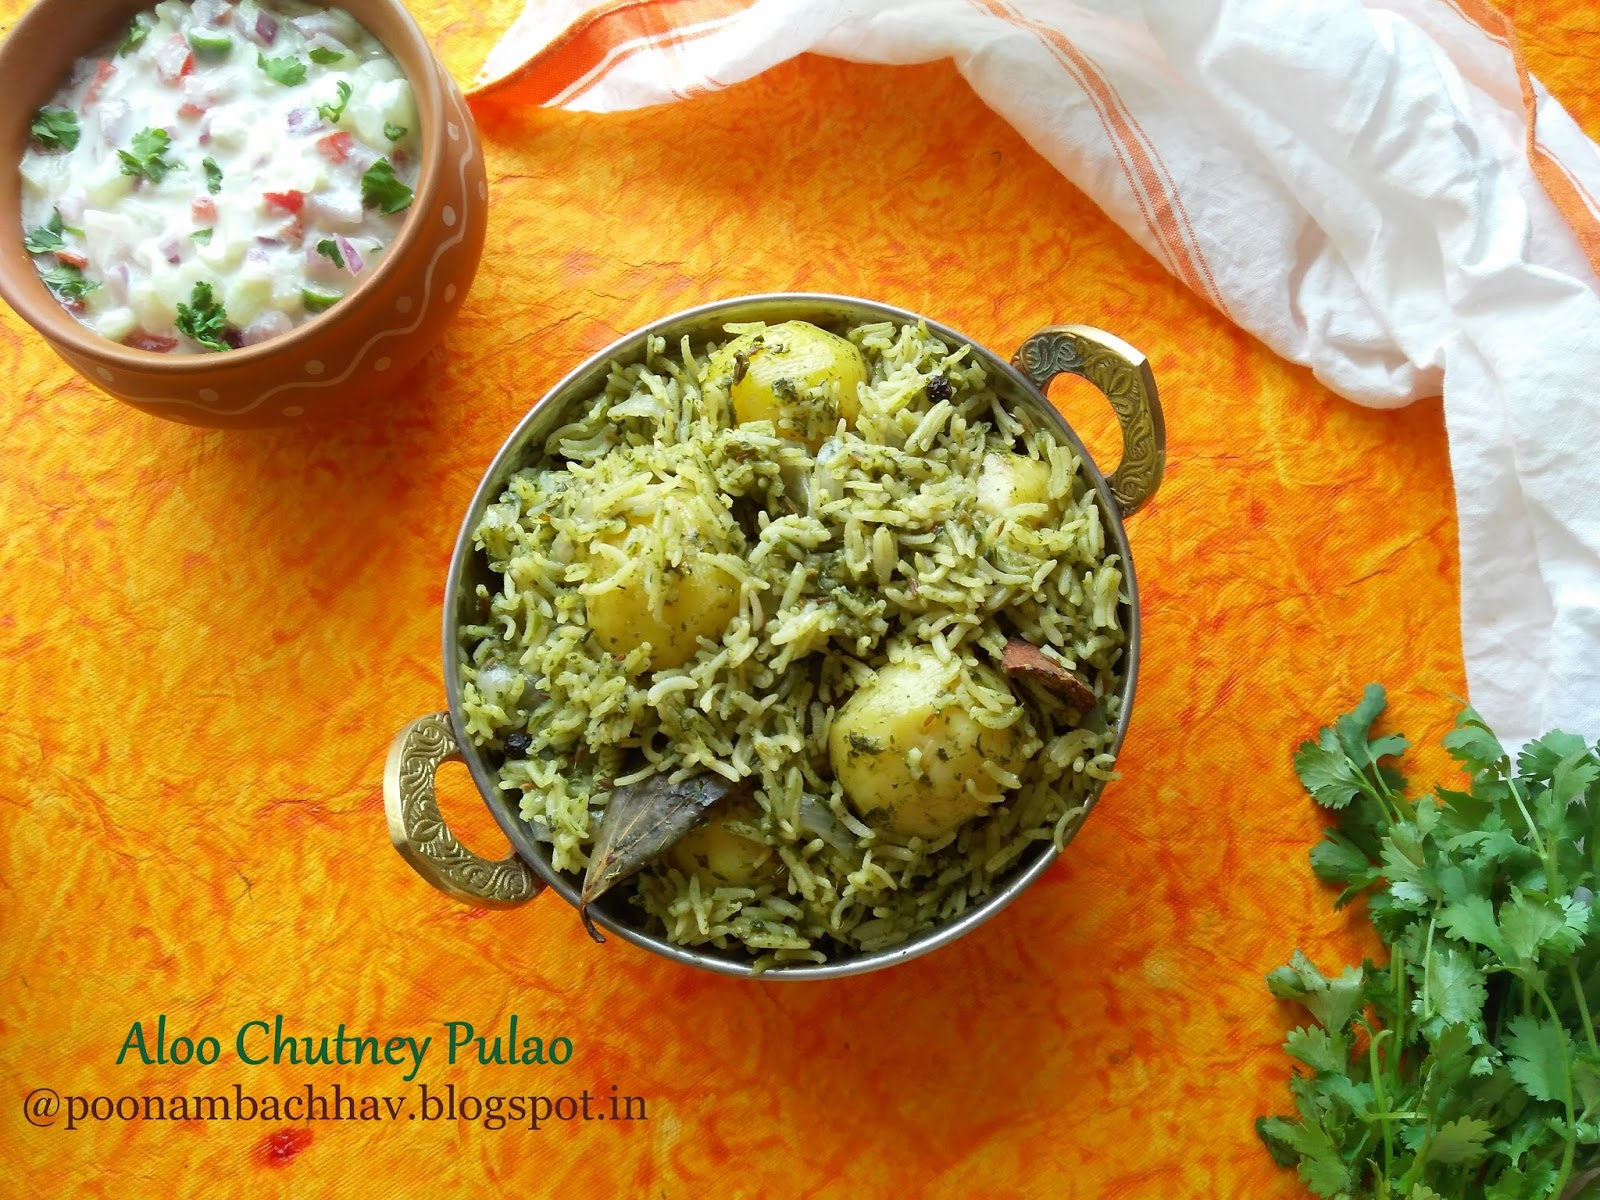 Indian food recipes indian recipes desi food desi recipes aloo chutney pulao is a flavorful one pot meal where rice is cooked with baby potatoes and green chutney the spicy coriander and mint chutney adds both forumfinder Gallery